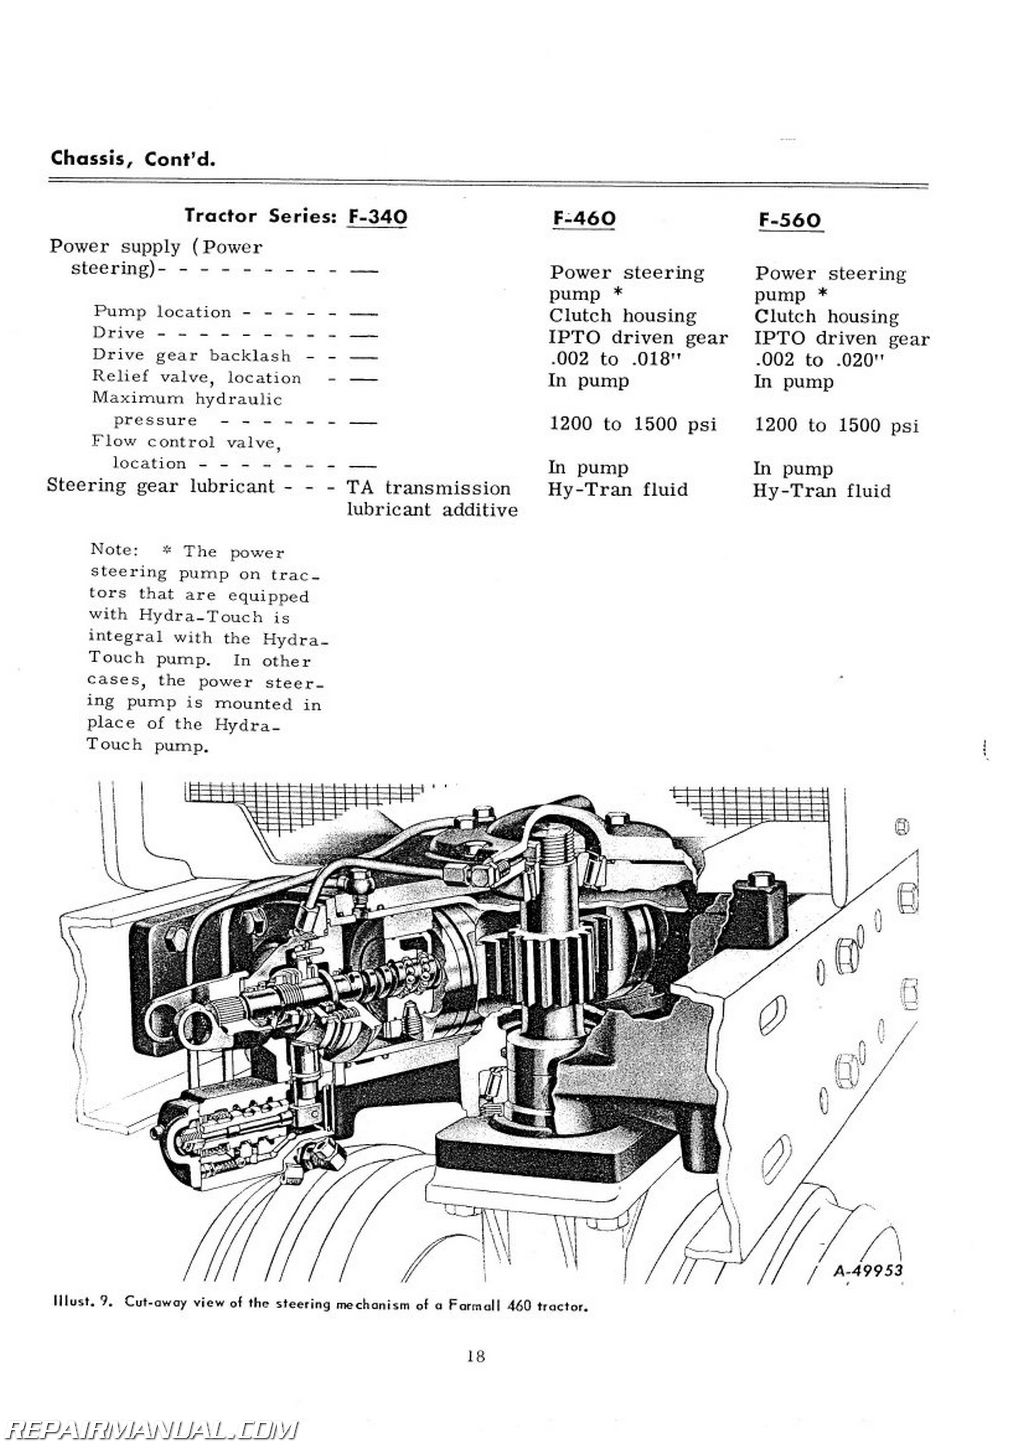 international harvester 340 460 560 tractor service manual